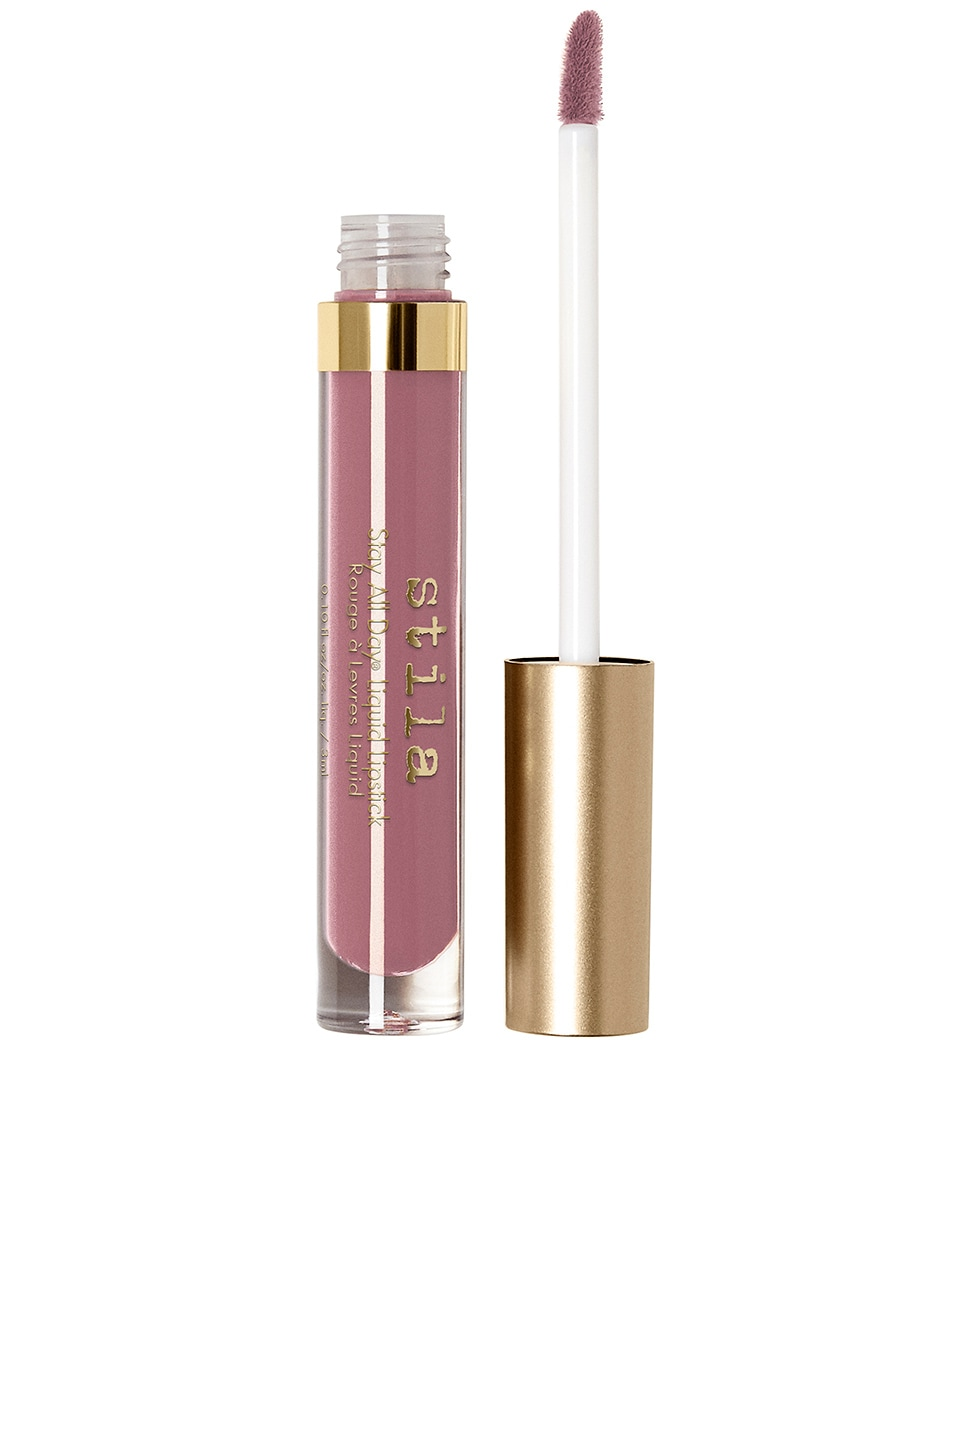 Stila Stay All Day Liquid Lipstick in Dolce Vita